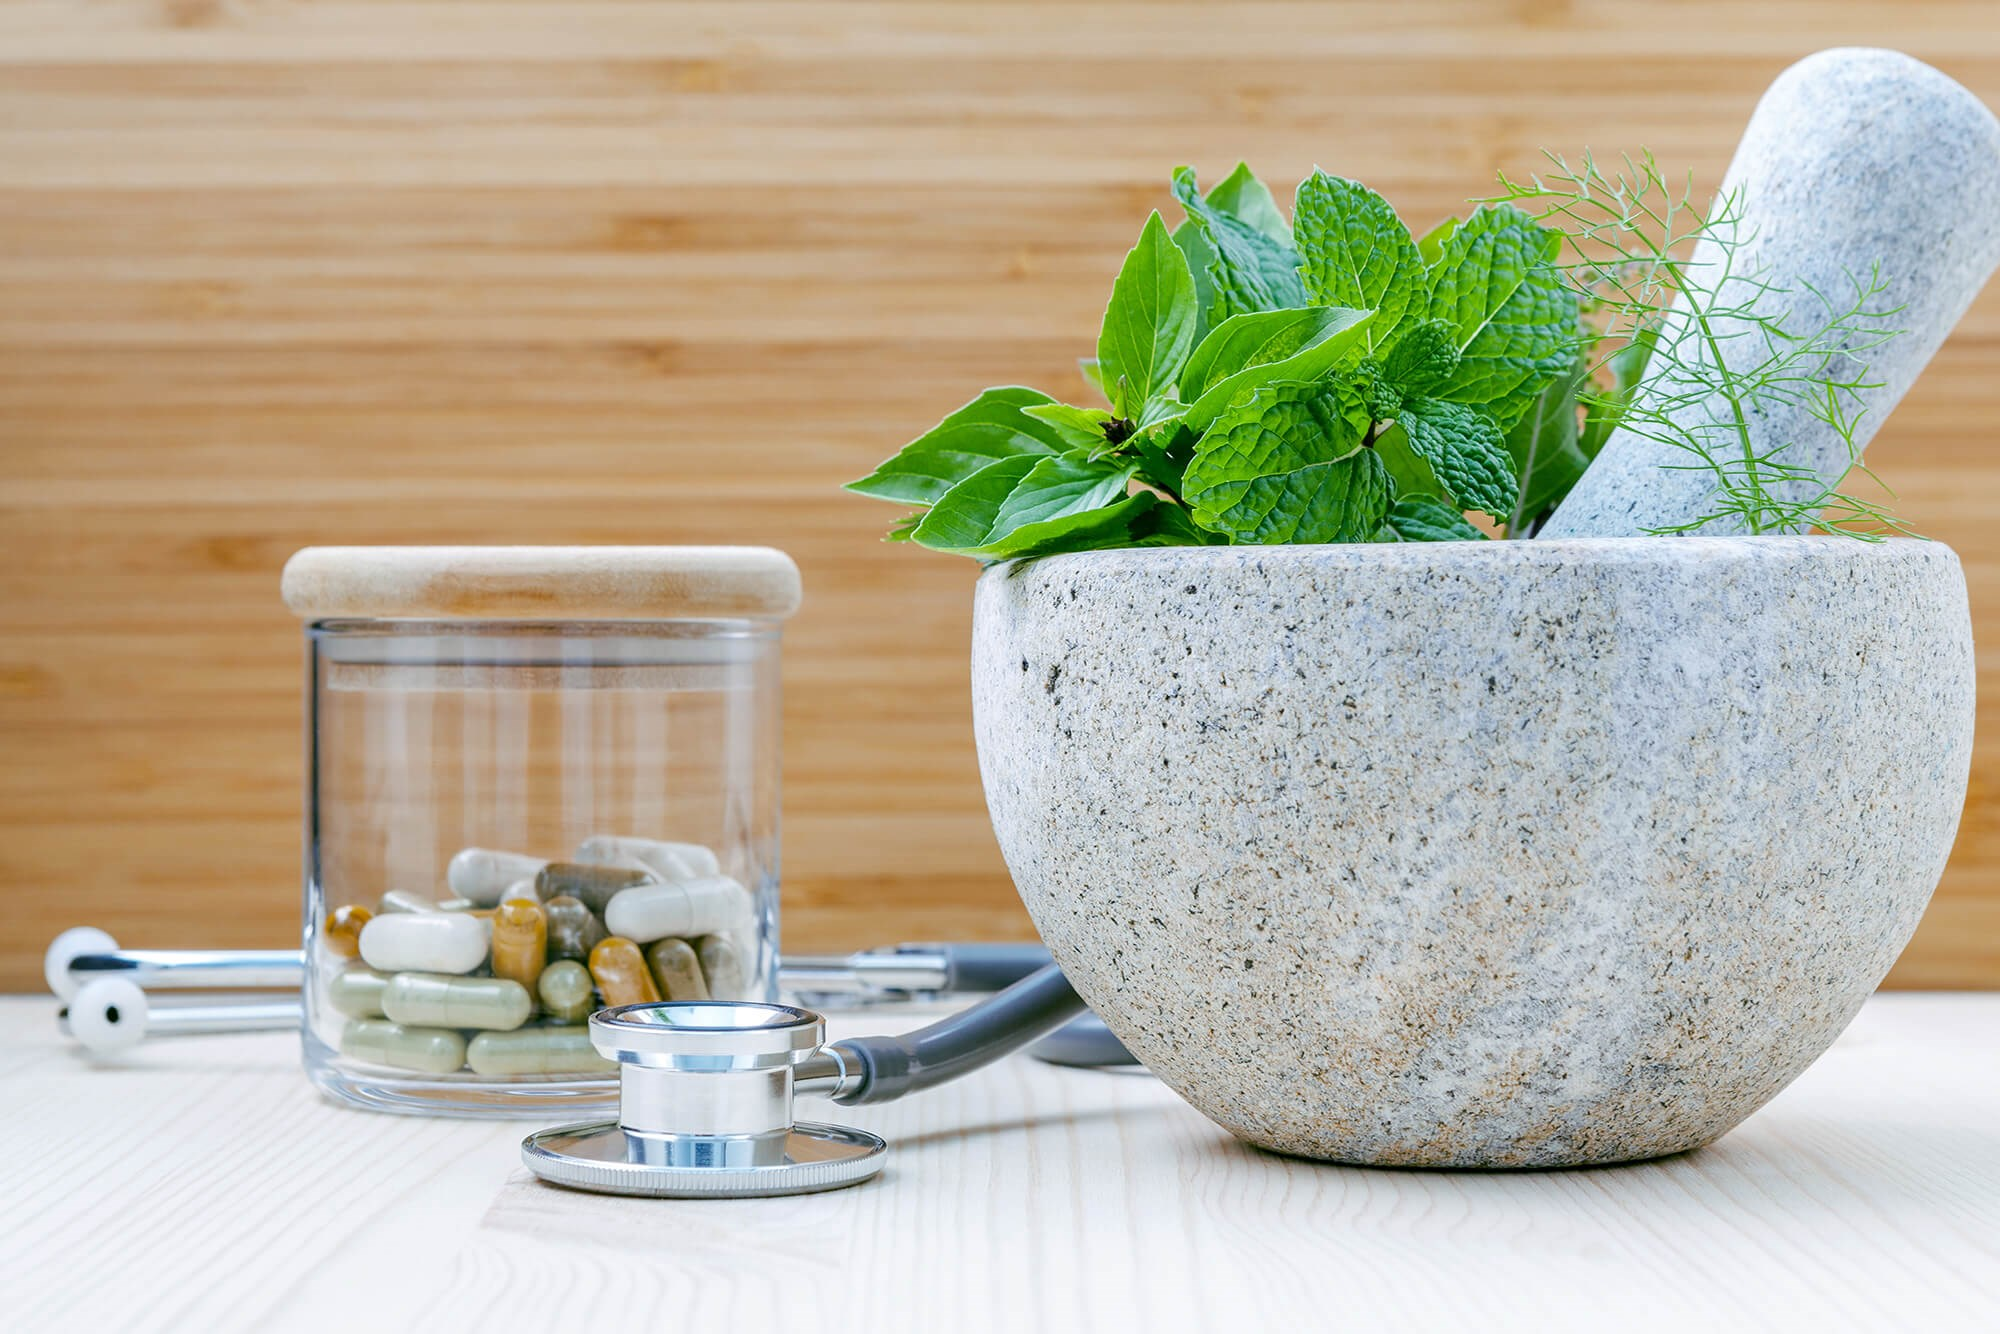 Nearly 4 in 10 Americans surveyed said they believe alternative remedies can cure cancer, according to a 2018 ASCO survey.